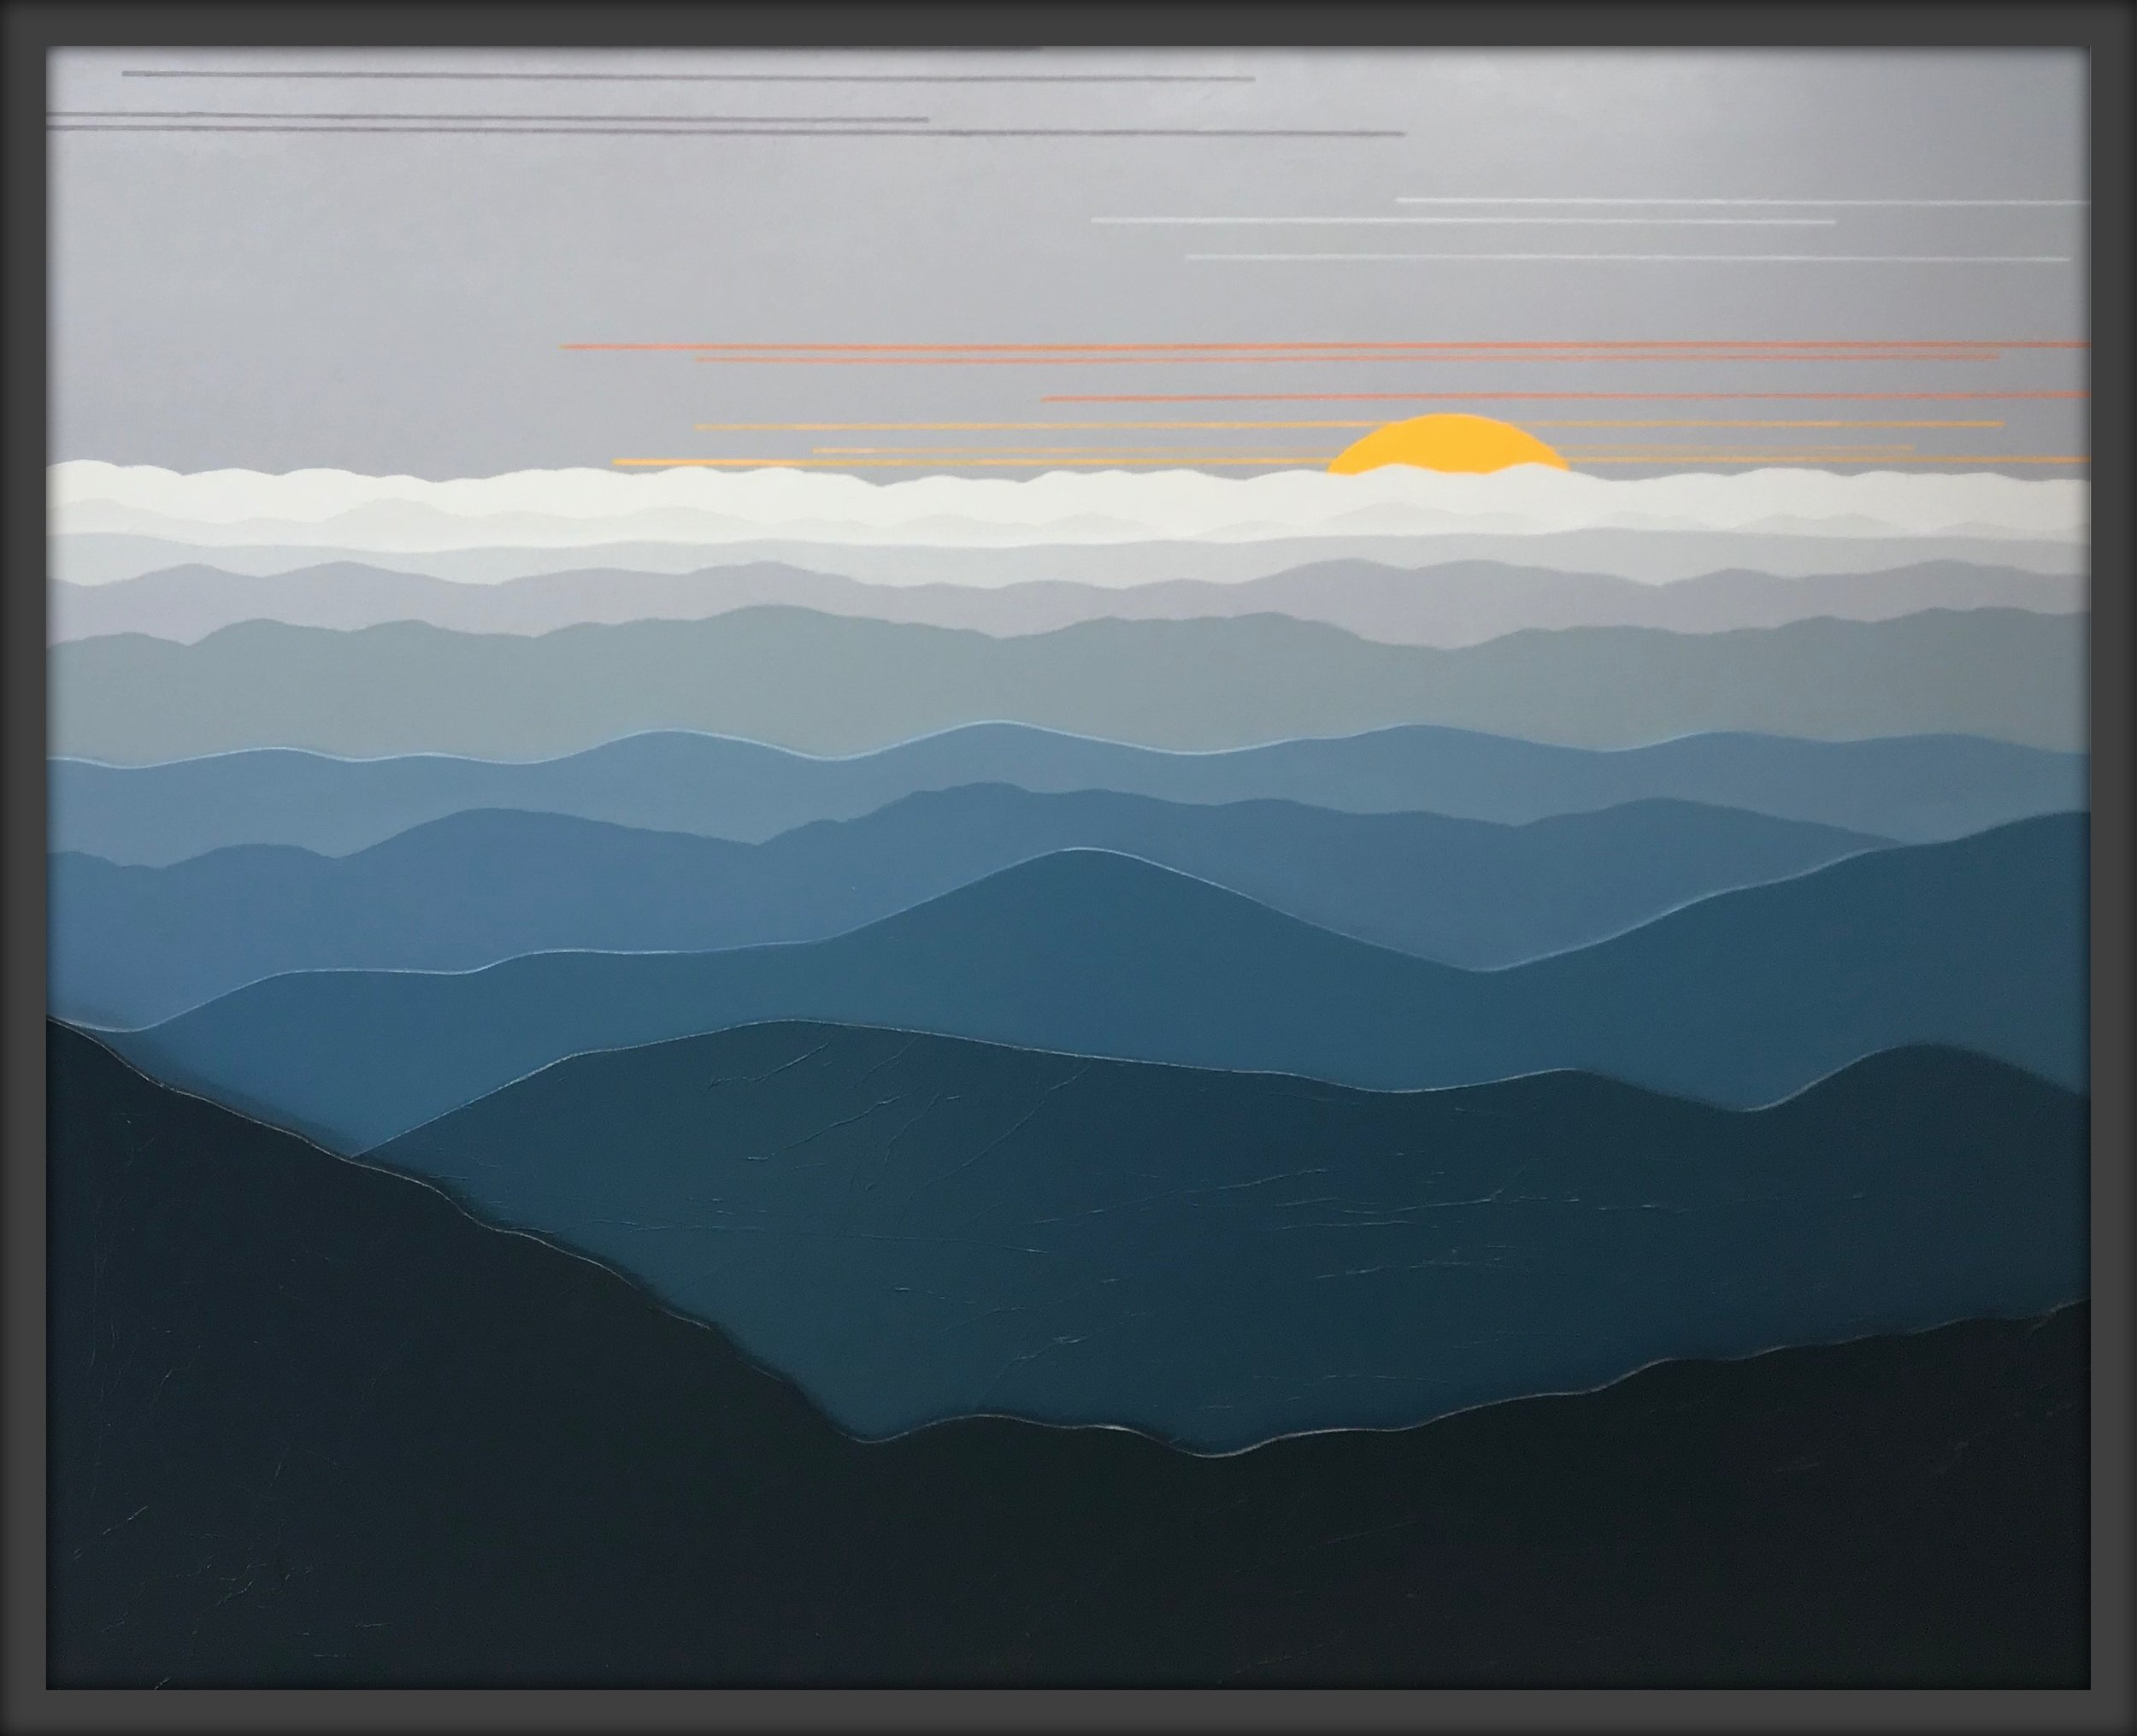 Commission Dimensional Landscape Paintings, Cindy Lou Chenard, Asheville, North Carolina-004.jpg